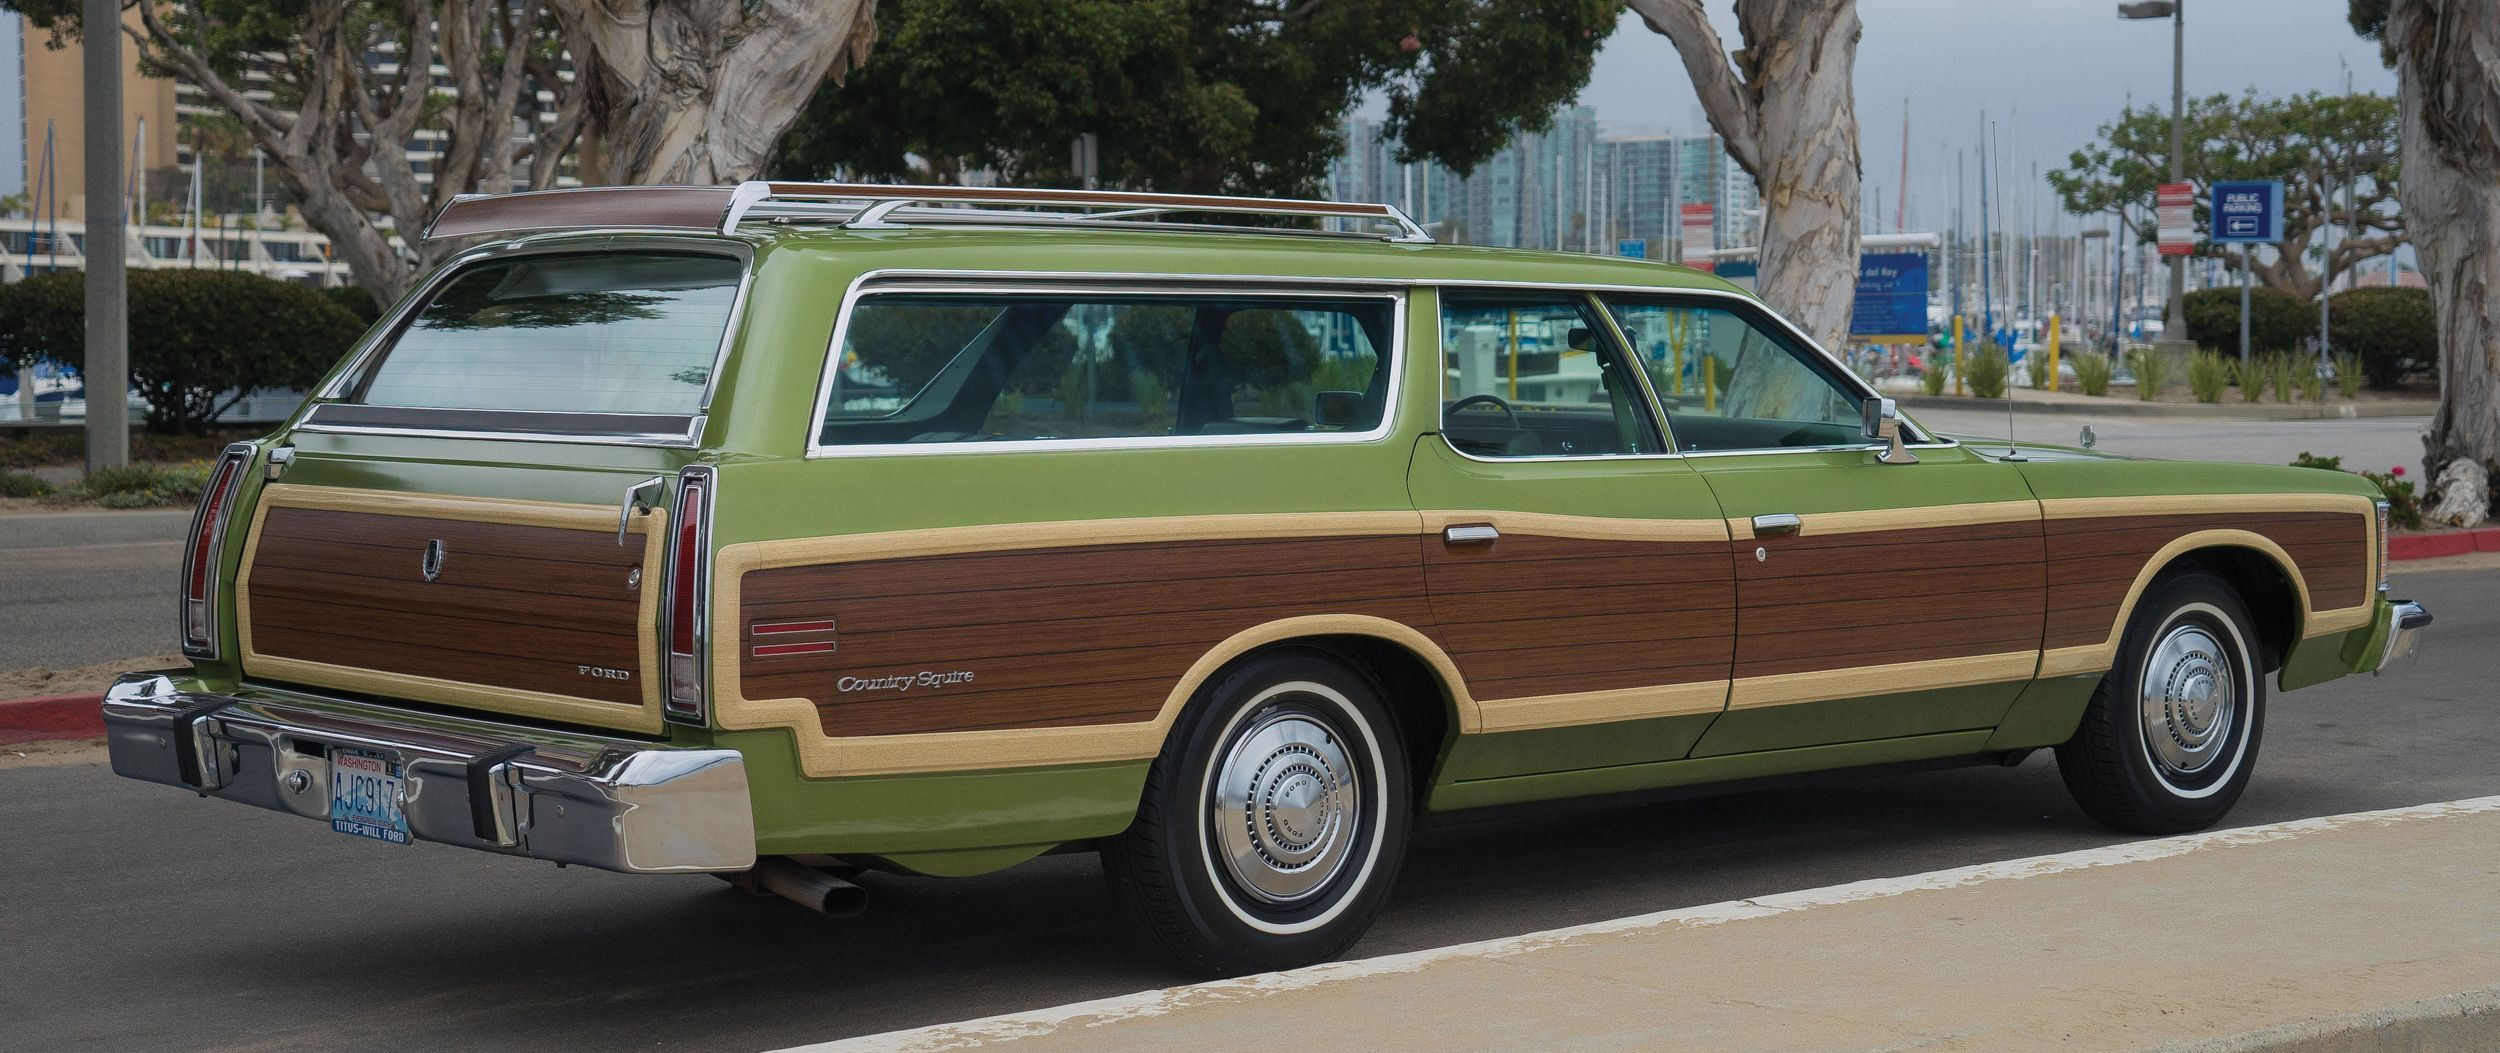 Low mile long roof – 1,400 mile 1974 Ford LTD Countr | Ford, Station ...